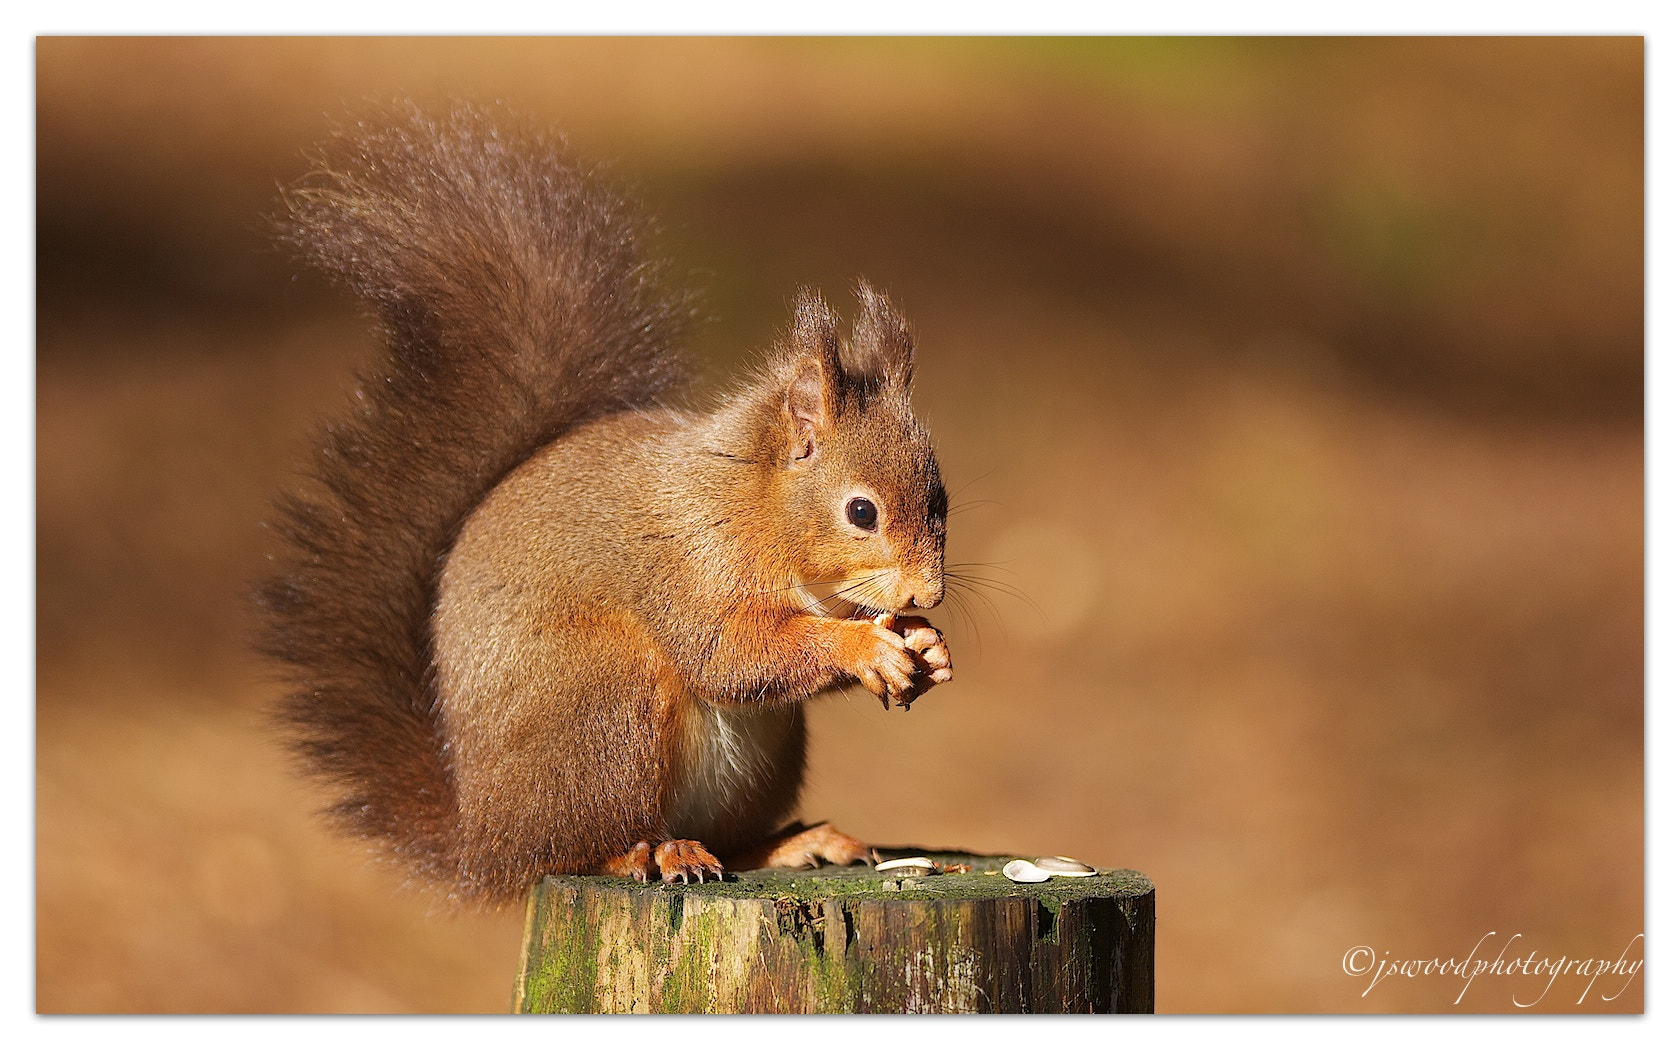 Photograph Tufty the Red Squirrel by Jason Wood on 500px